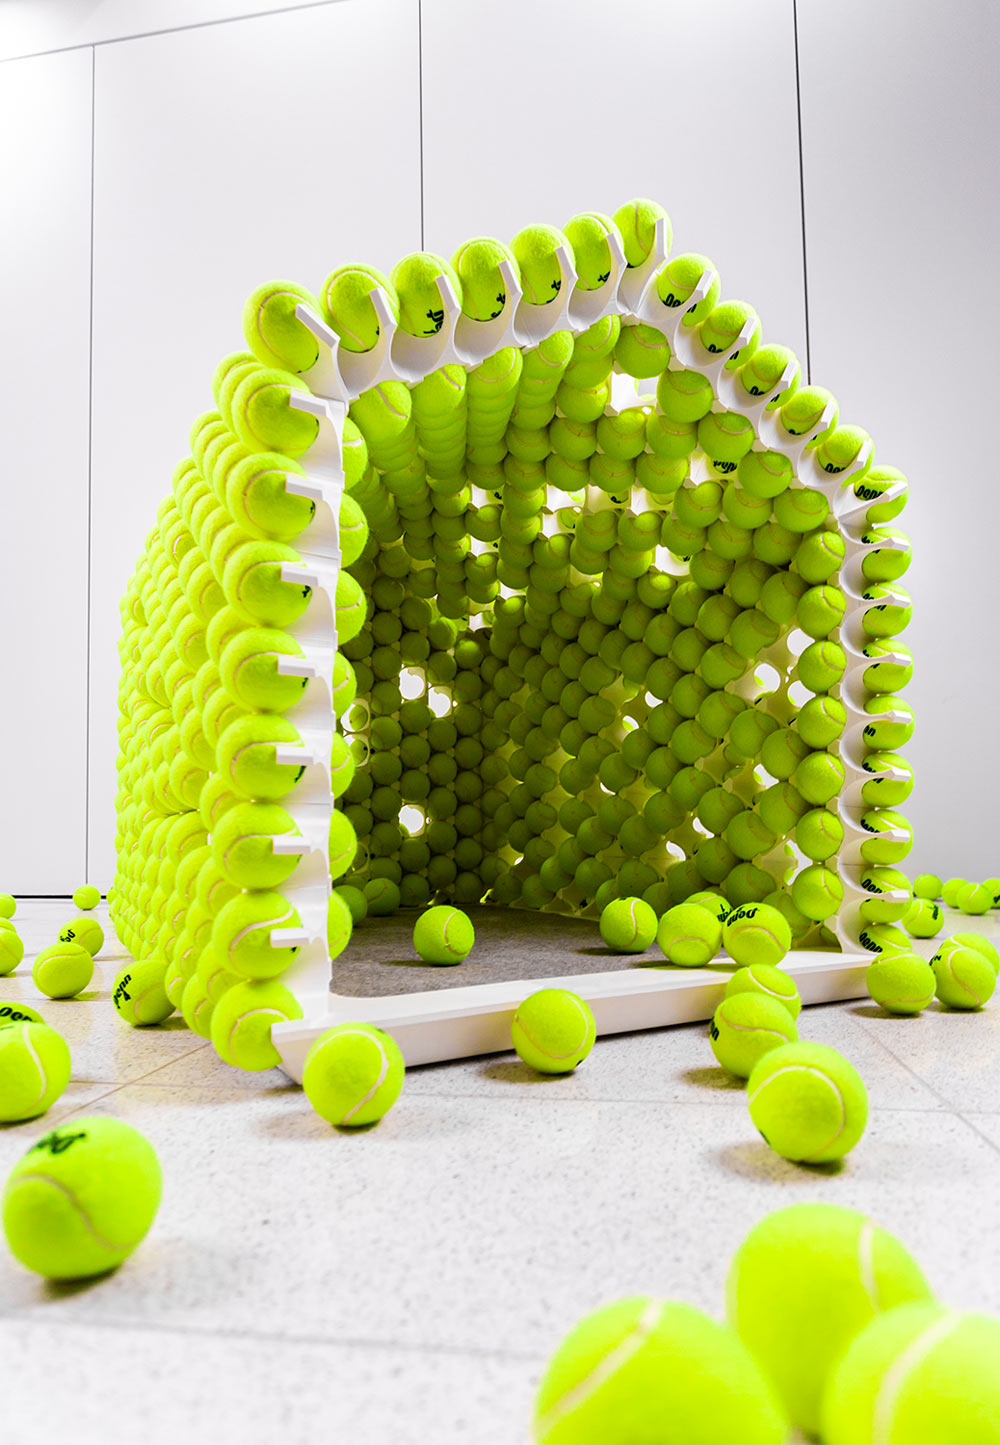 Fetch-House-Tennis-Balls-CallisonRTKL-3